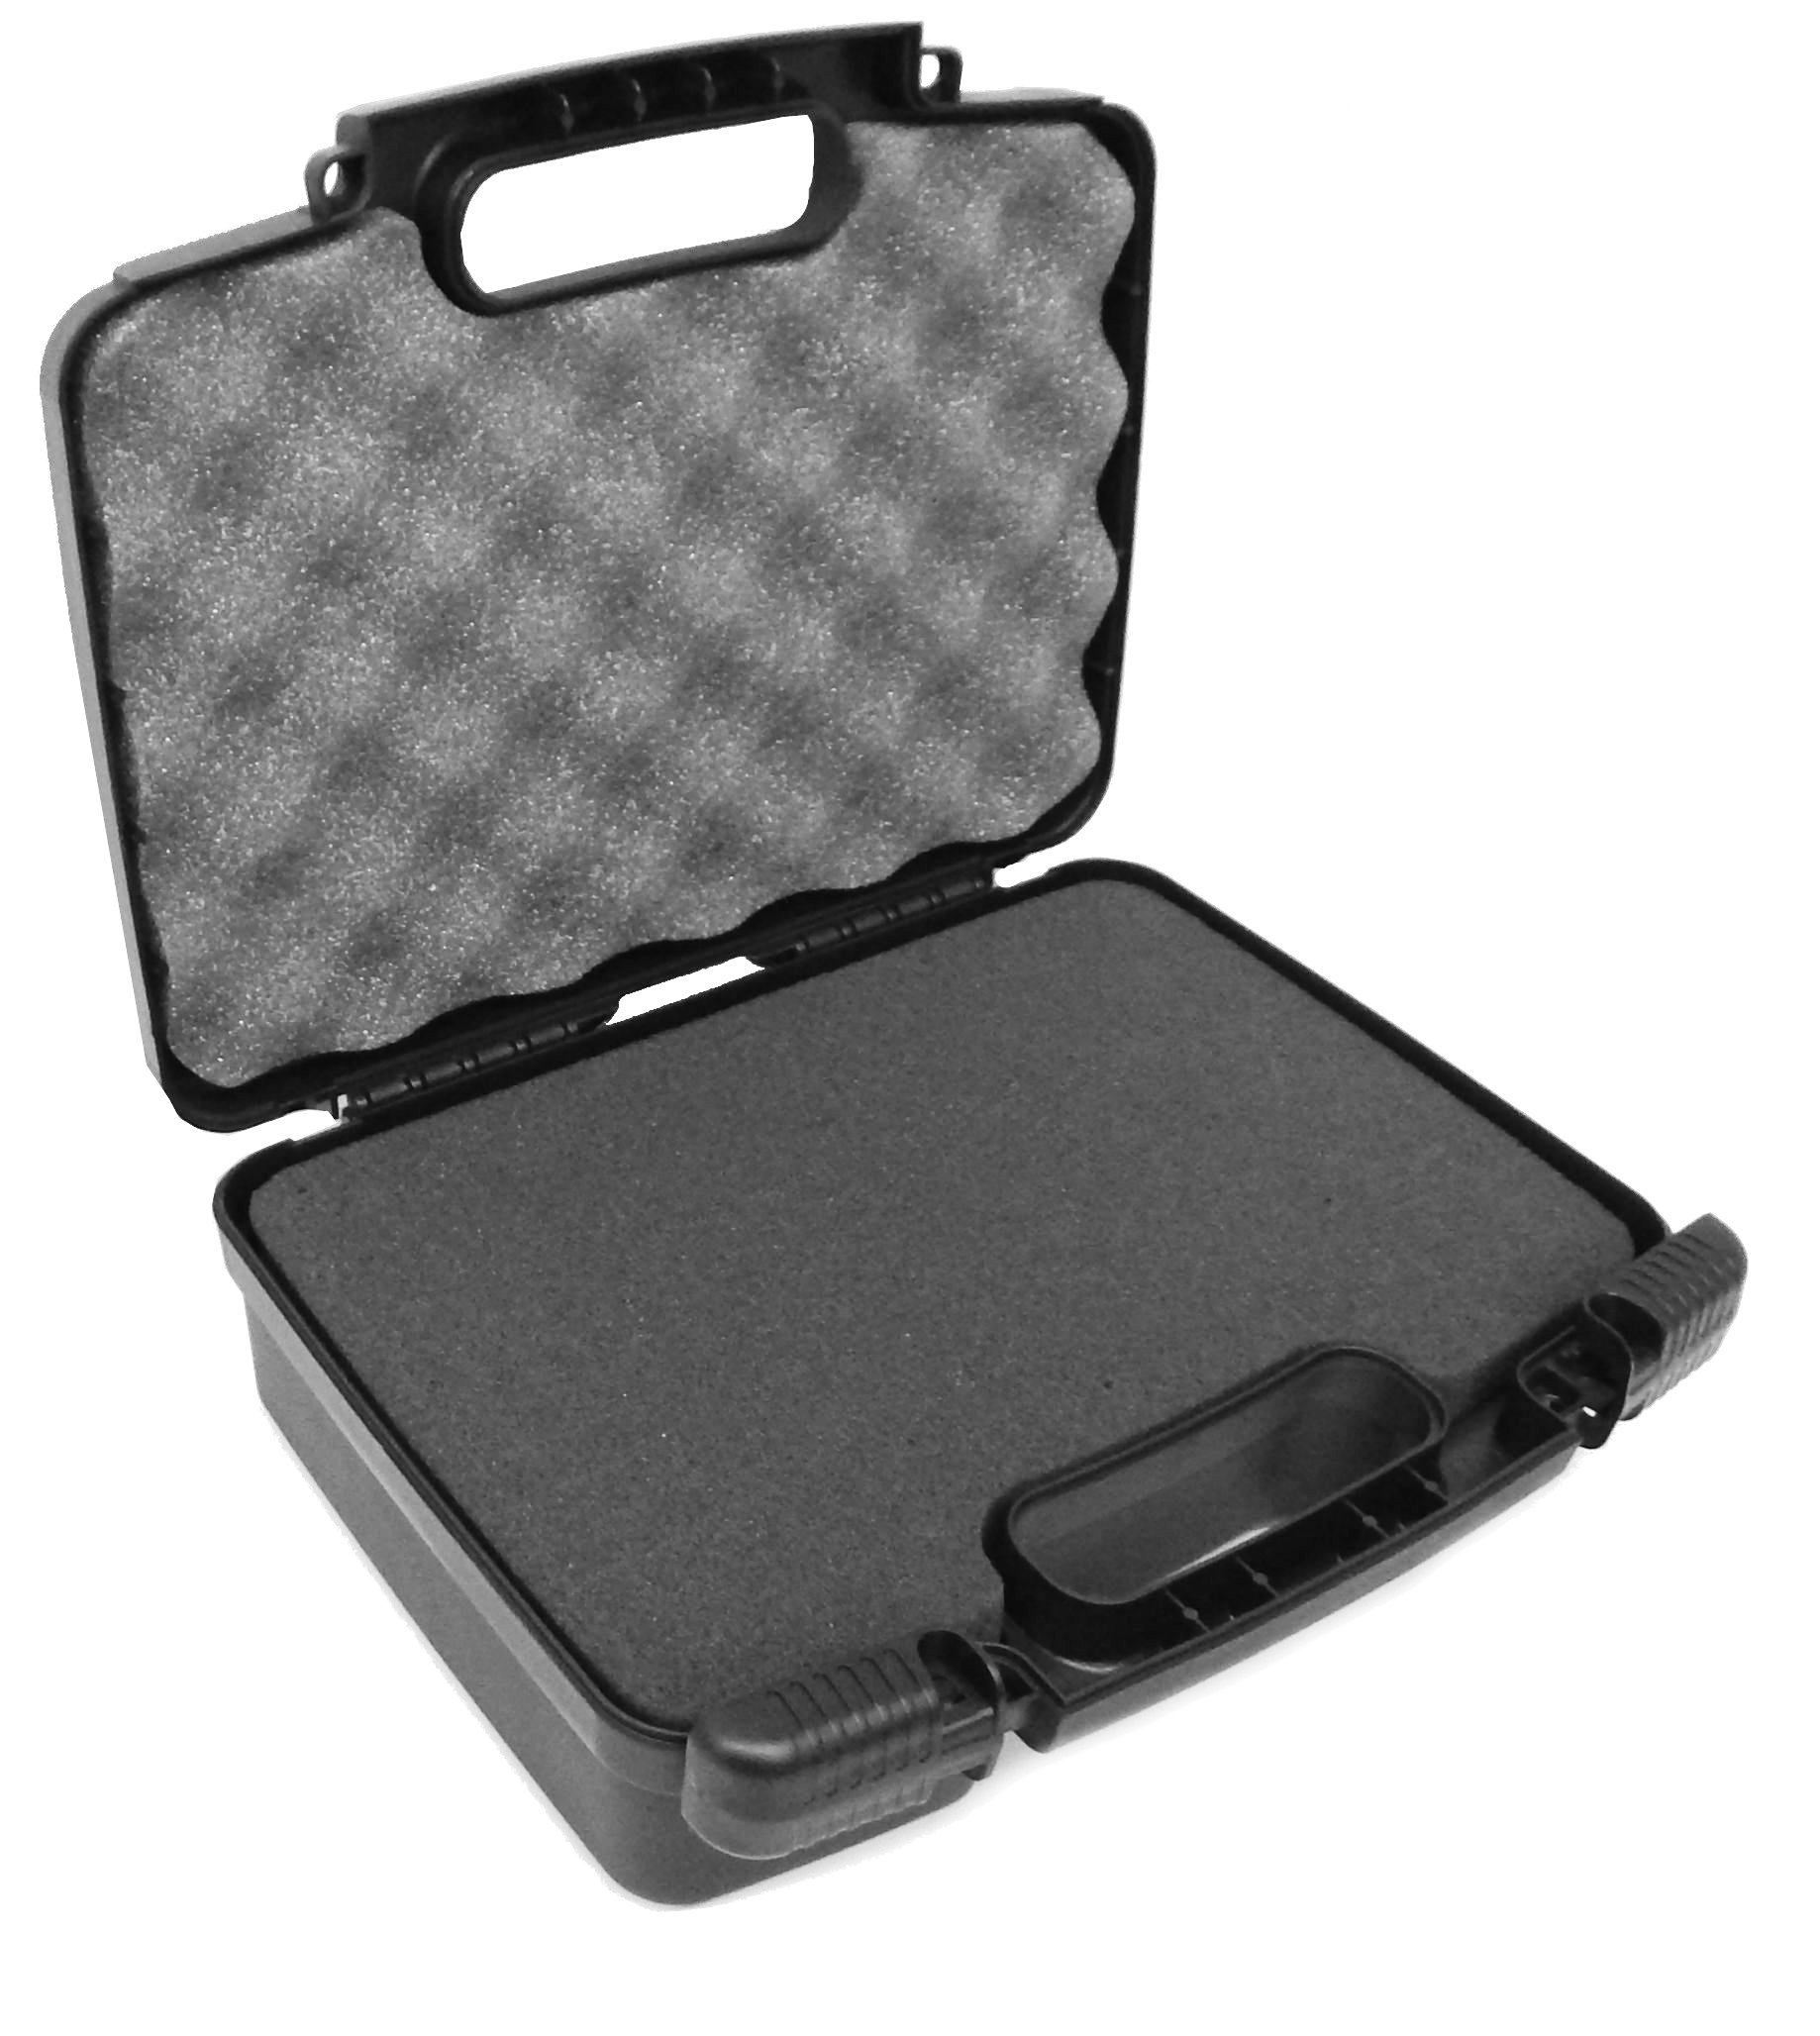 CASEMATIX Portable Projector Carrying Hard Case with Customizable Foam Fits Sony Pico Mobile Projector MPCL1 , MPCD1 , MP-CD1 , MP-CL1A , MPCL1A by CASEMATIX